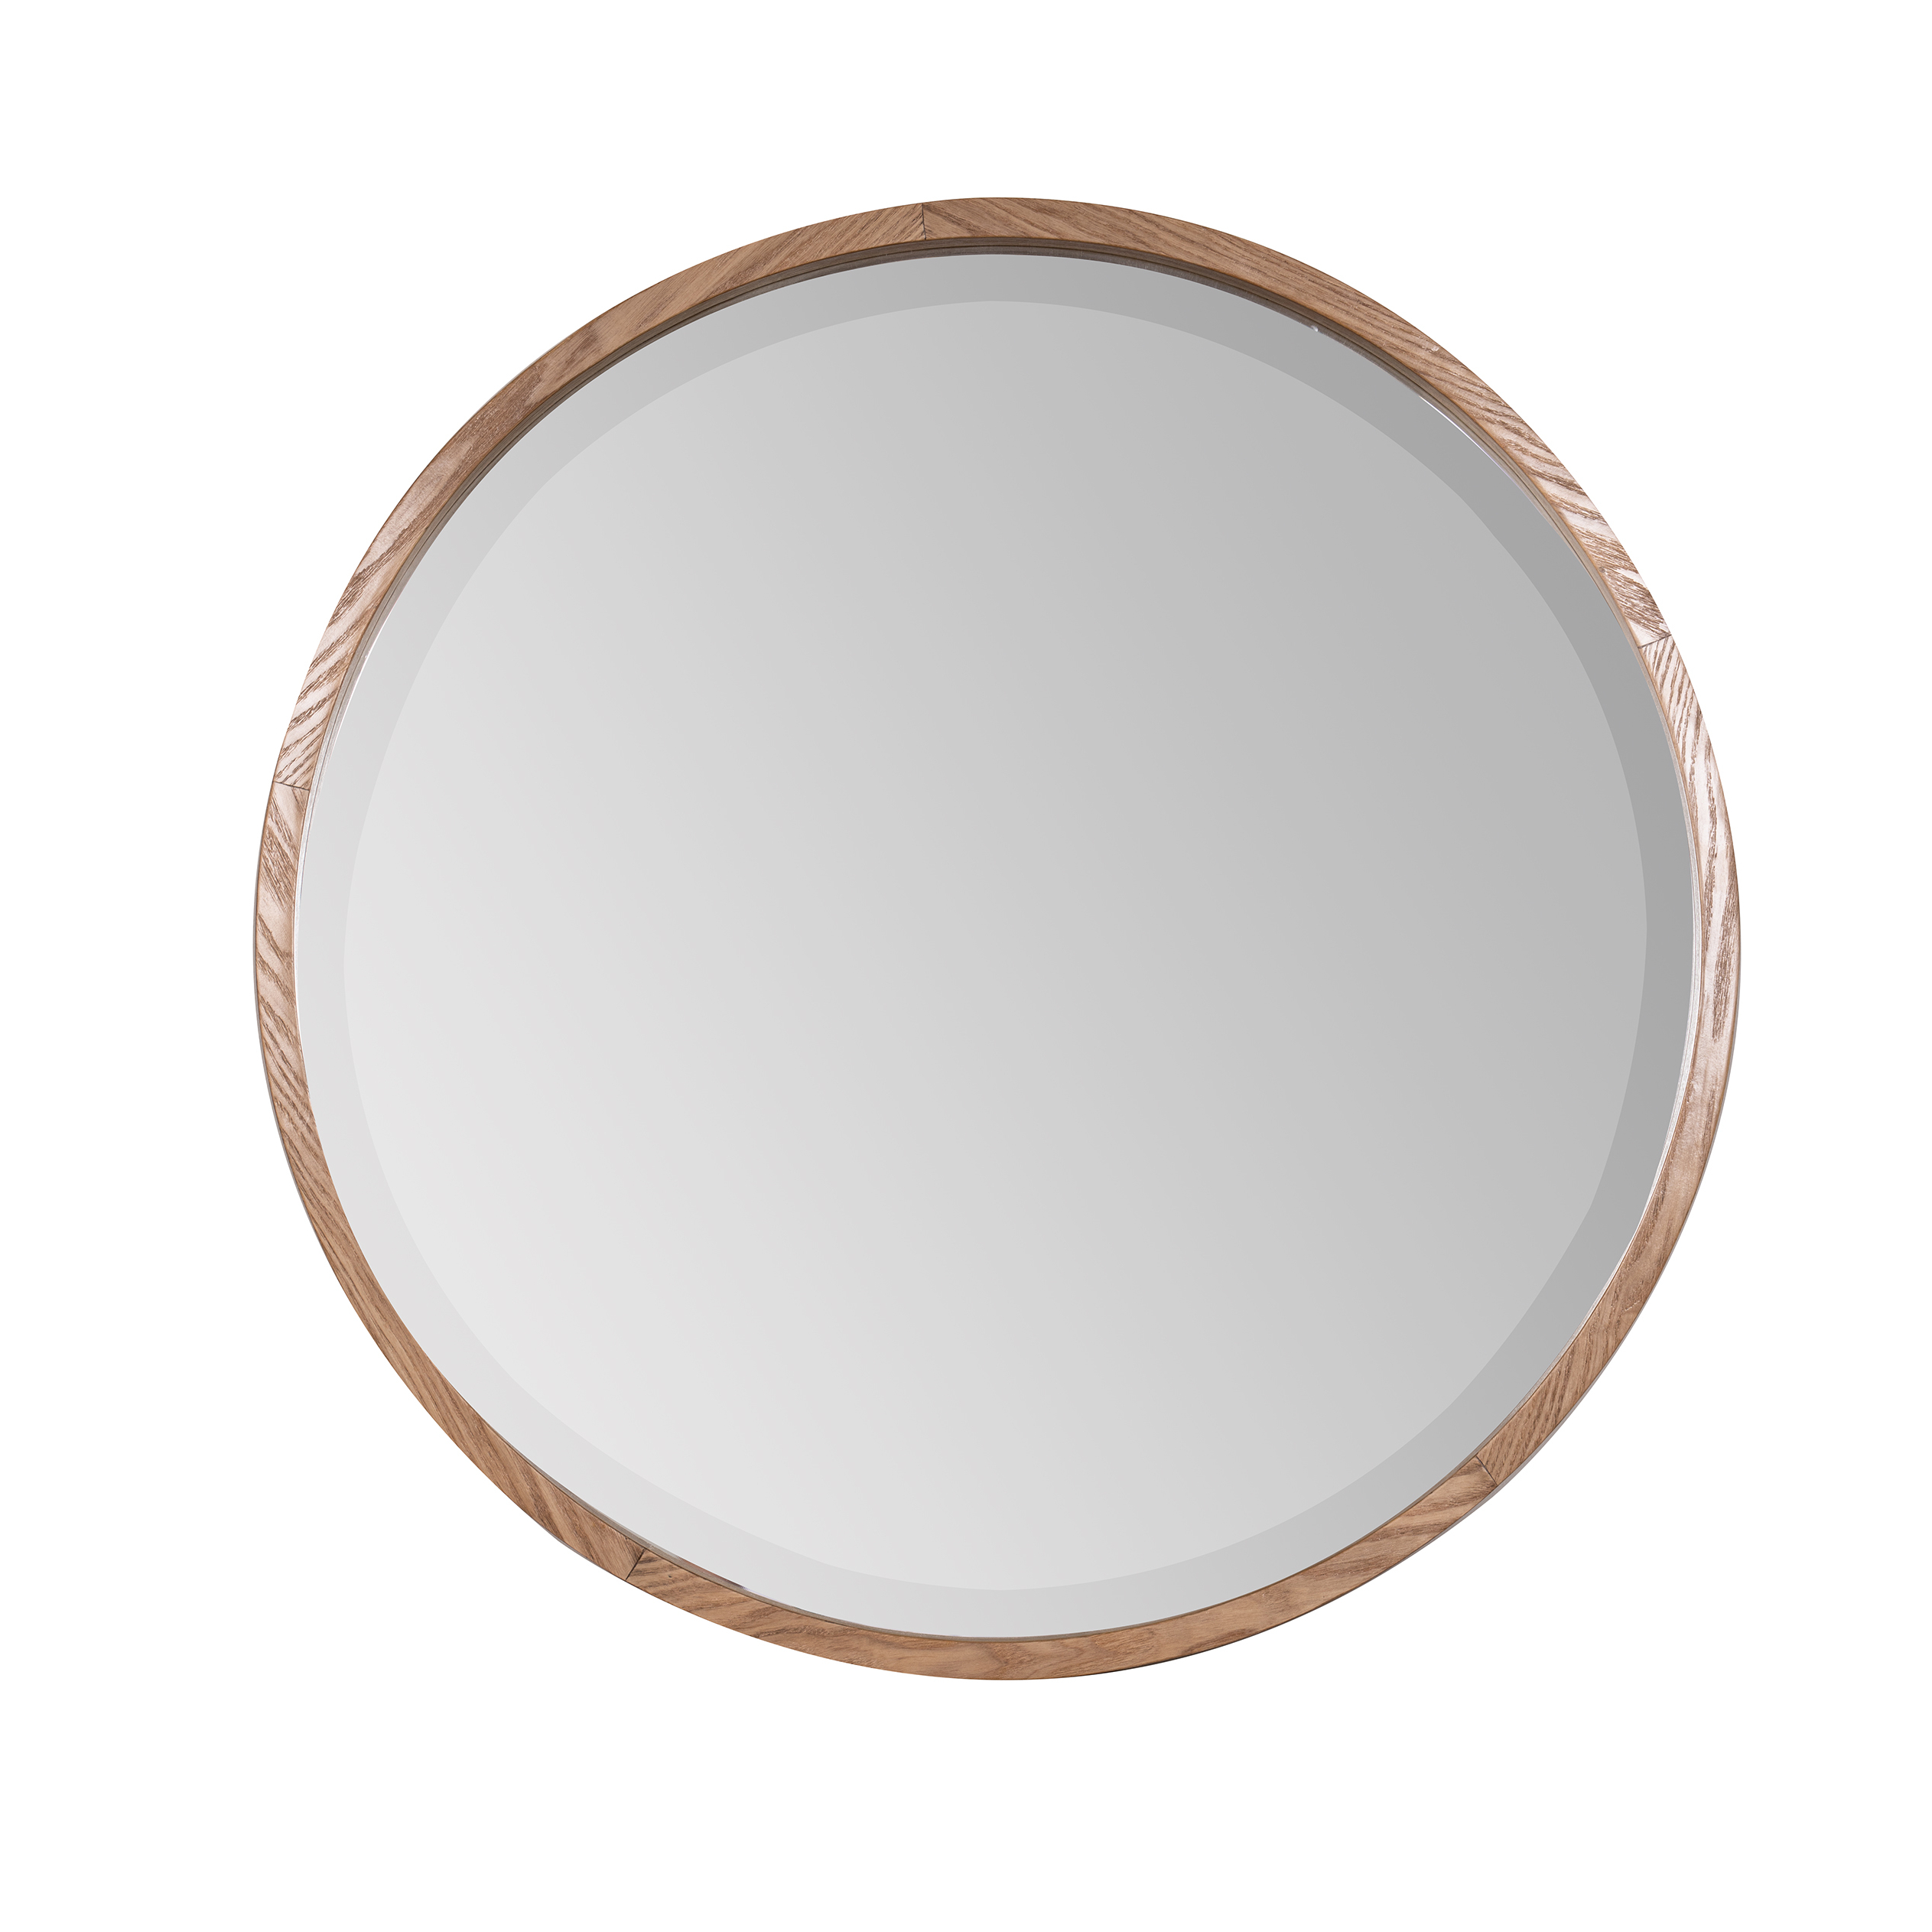 Parson Wall Mirror Regarding Favorite Parsons Wall Mirrors (View 11 of 20)